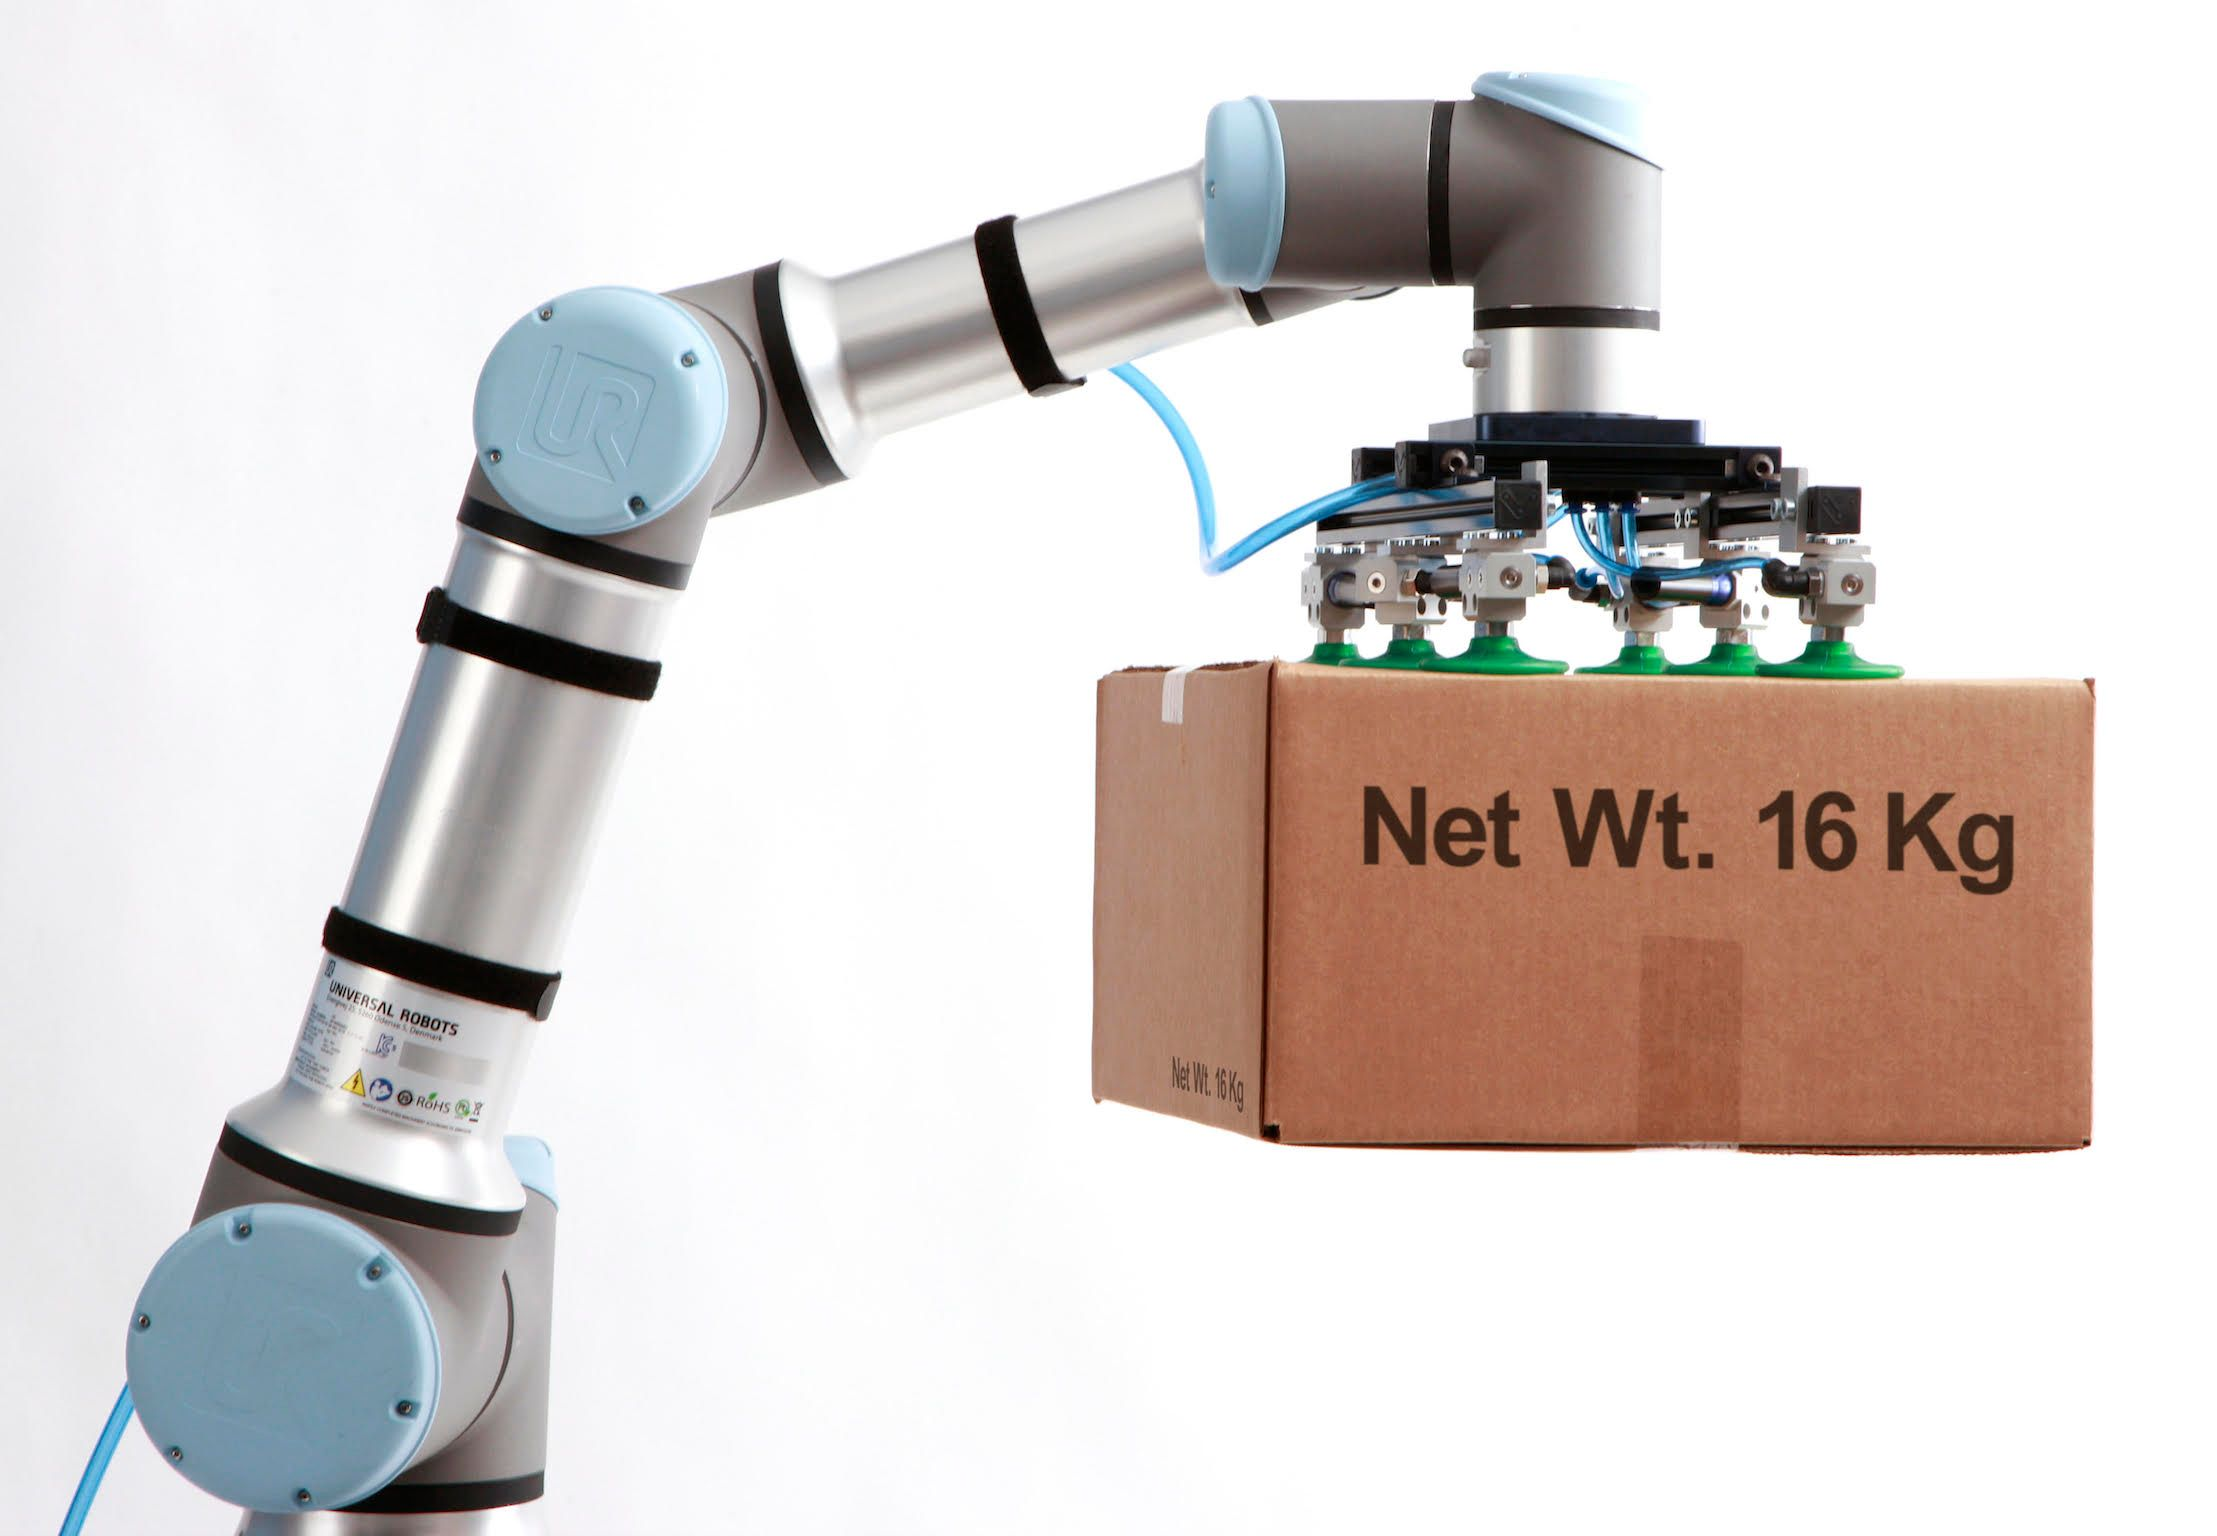 Universal Robots Introduces Its Strongest Robotic Arm Yet